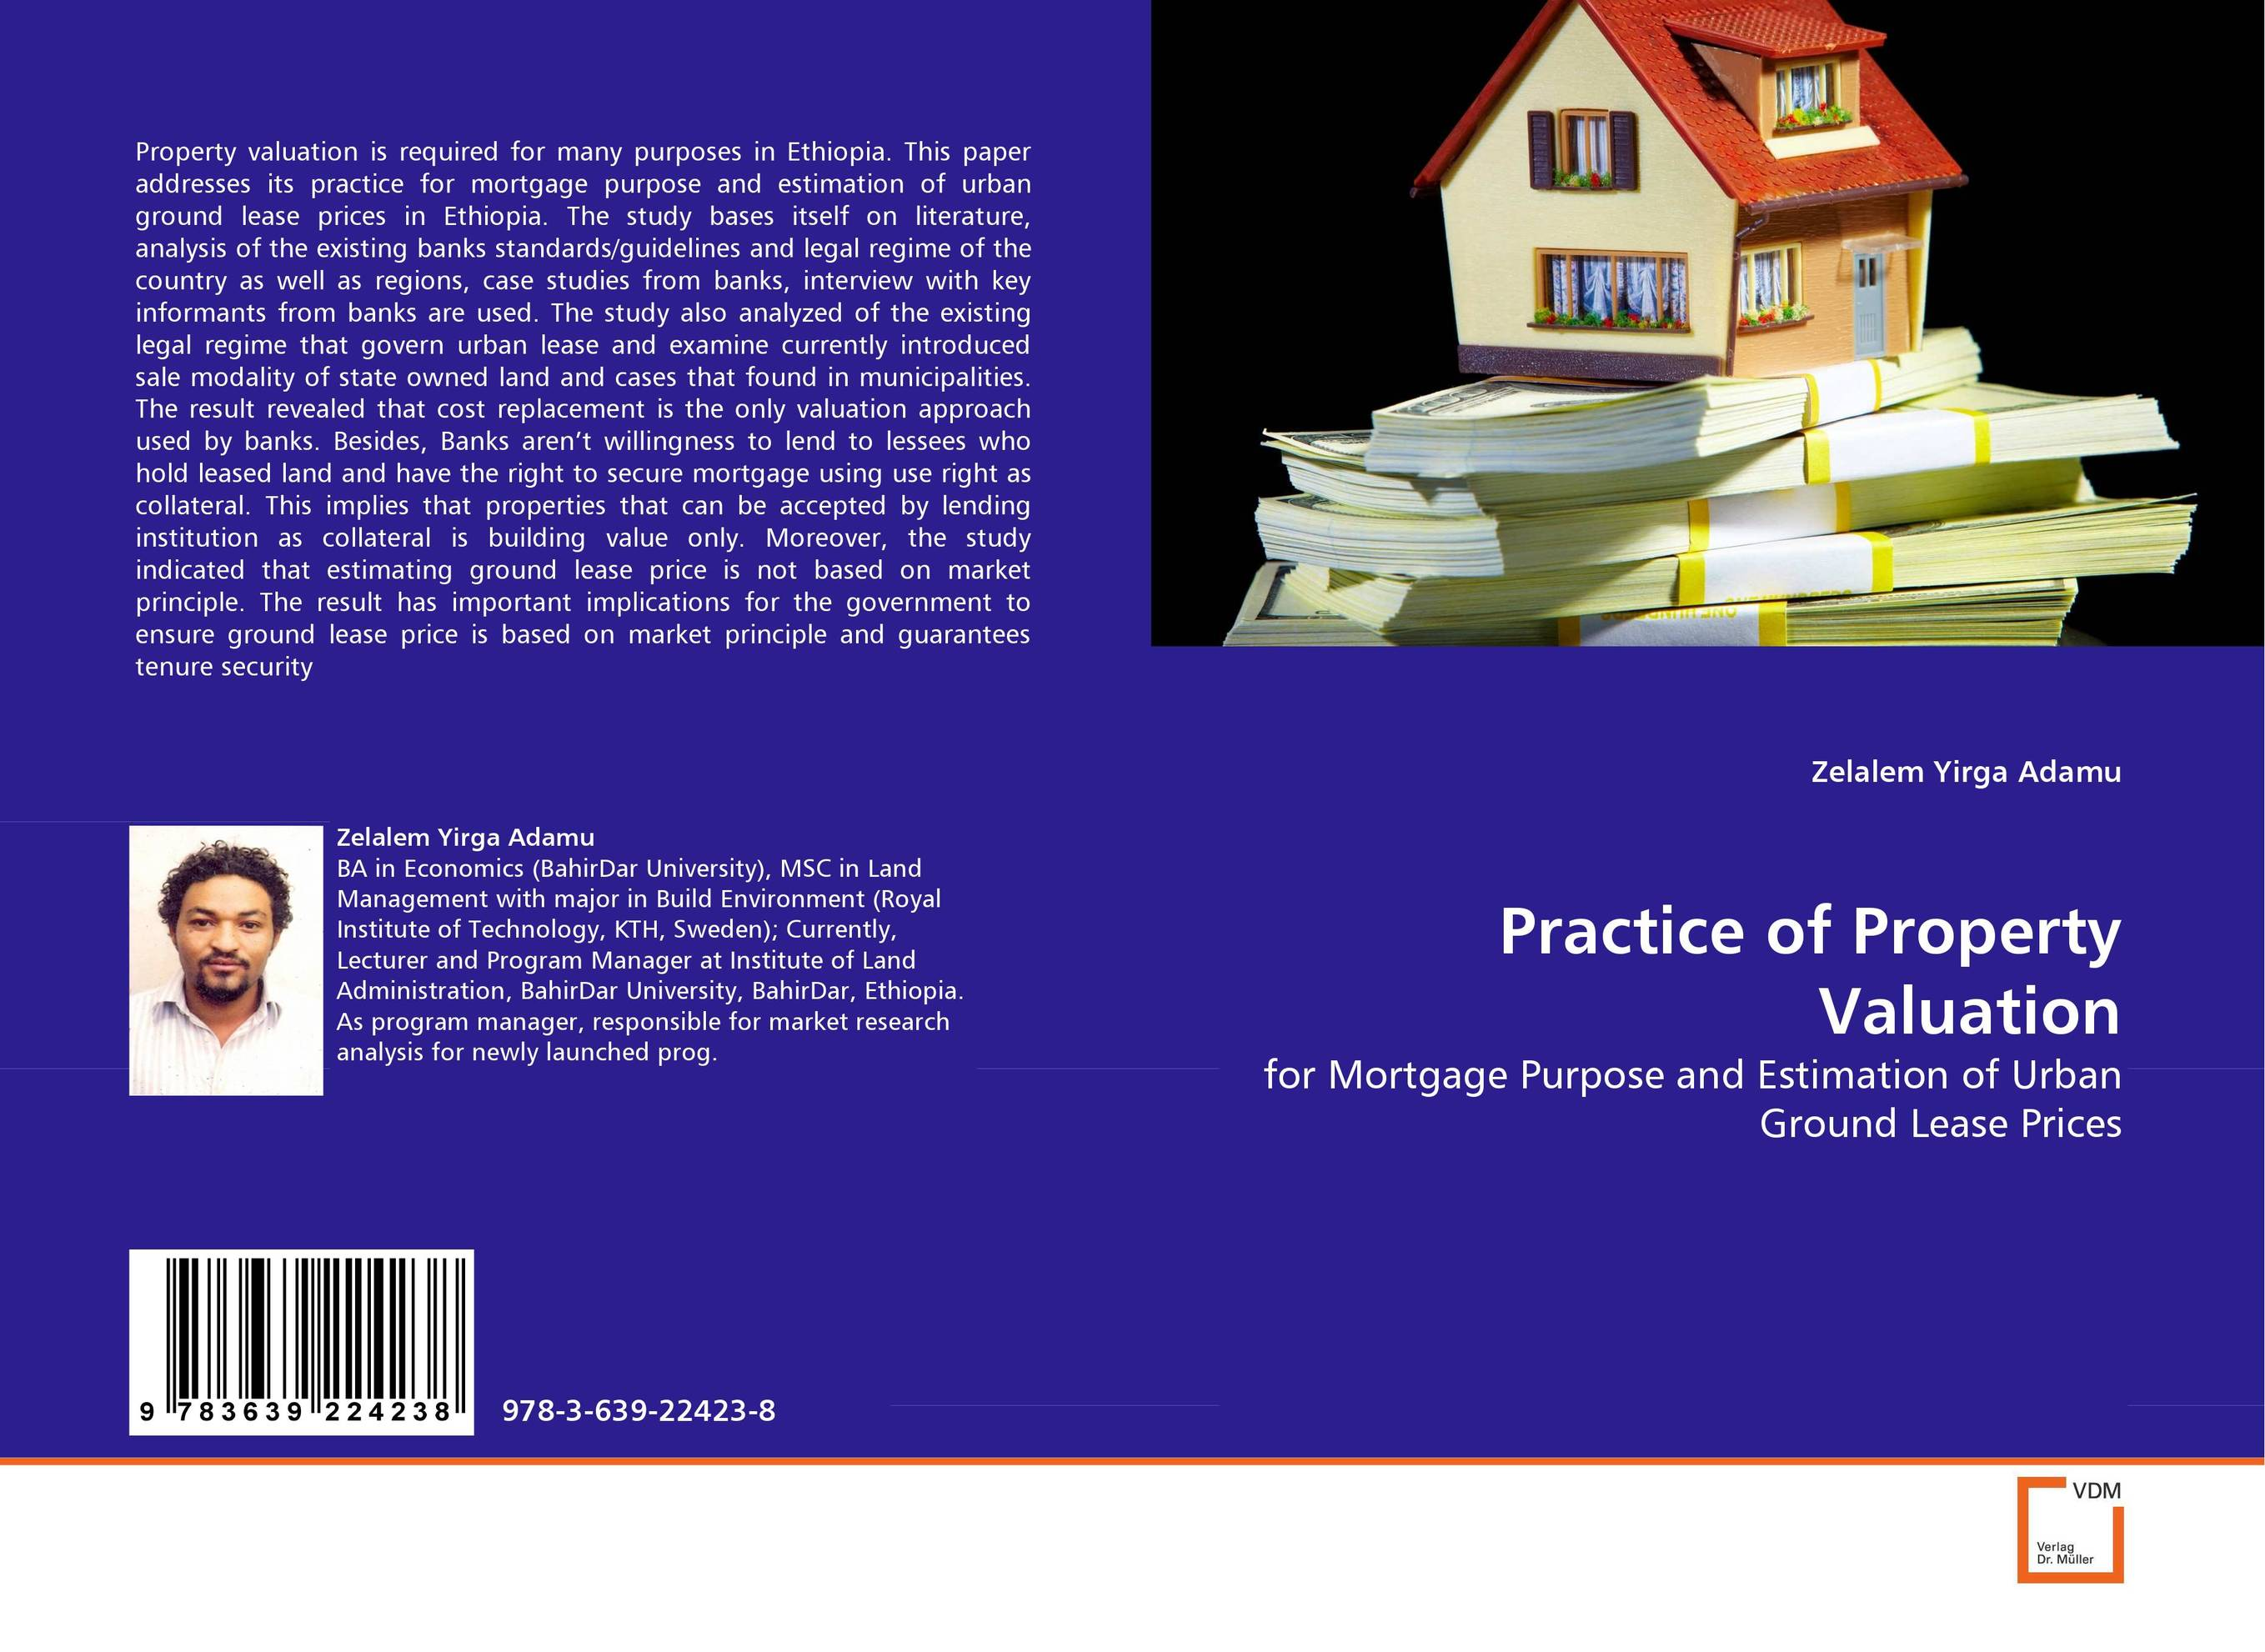 Practice of Property Valuation